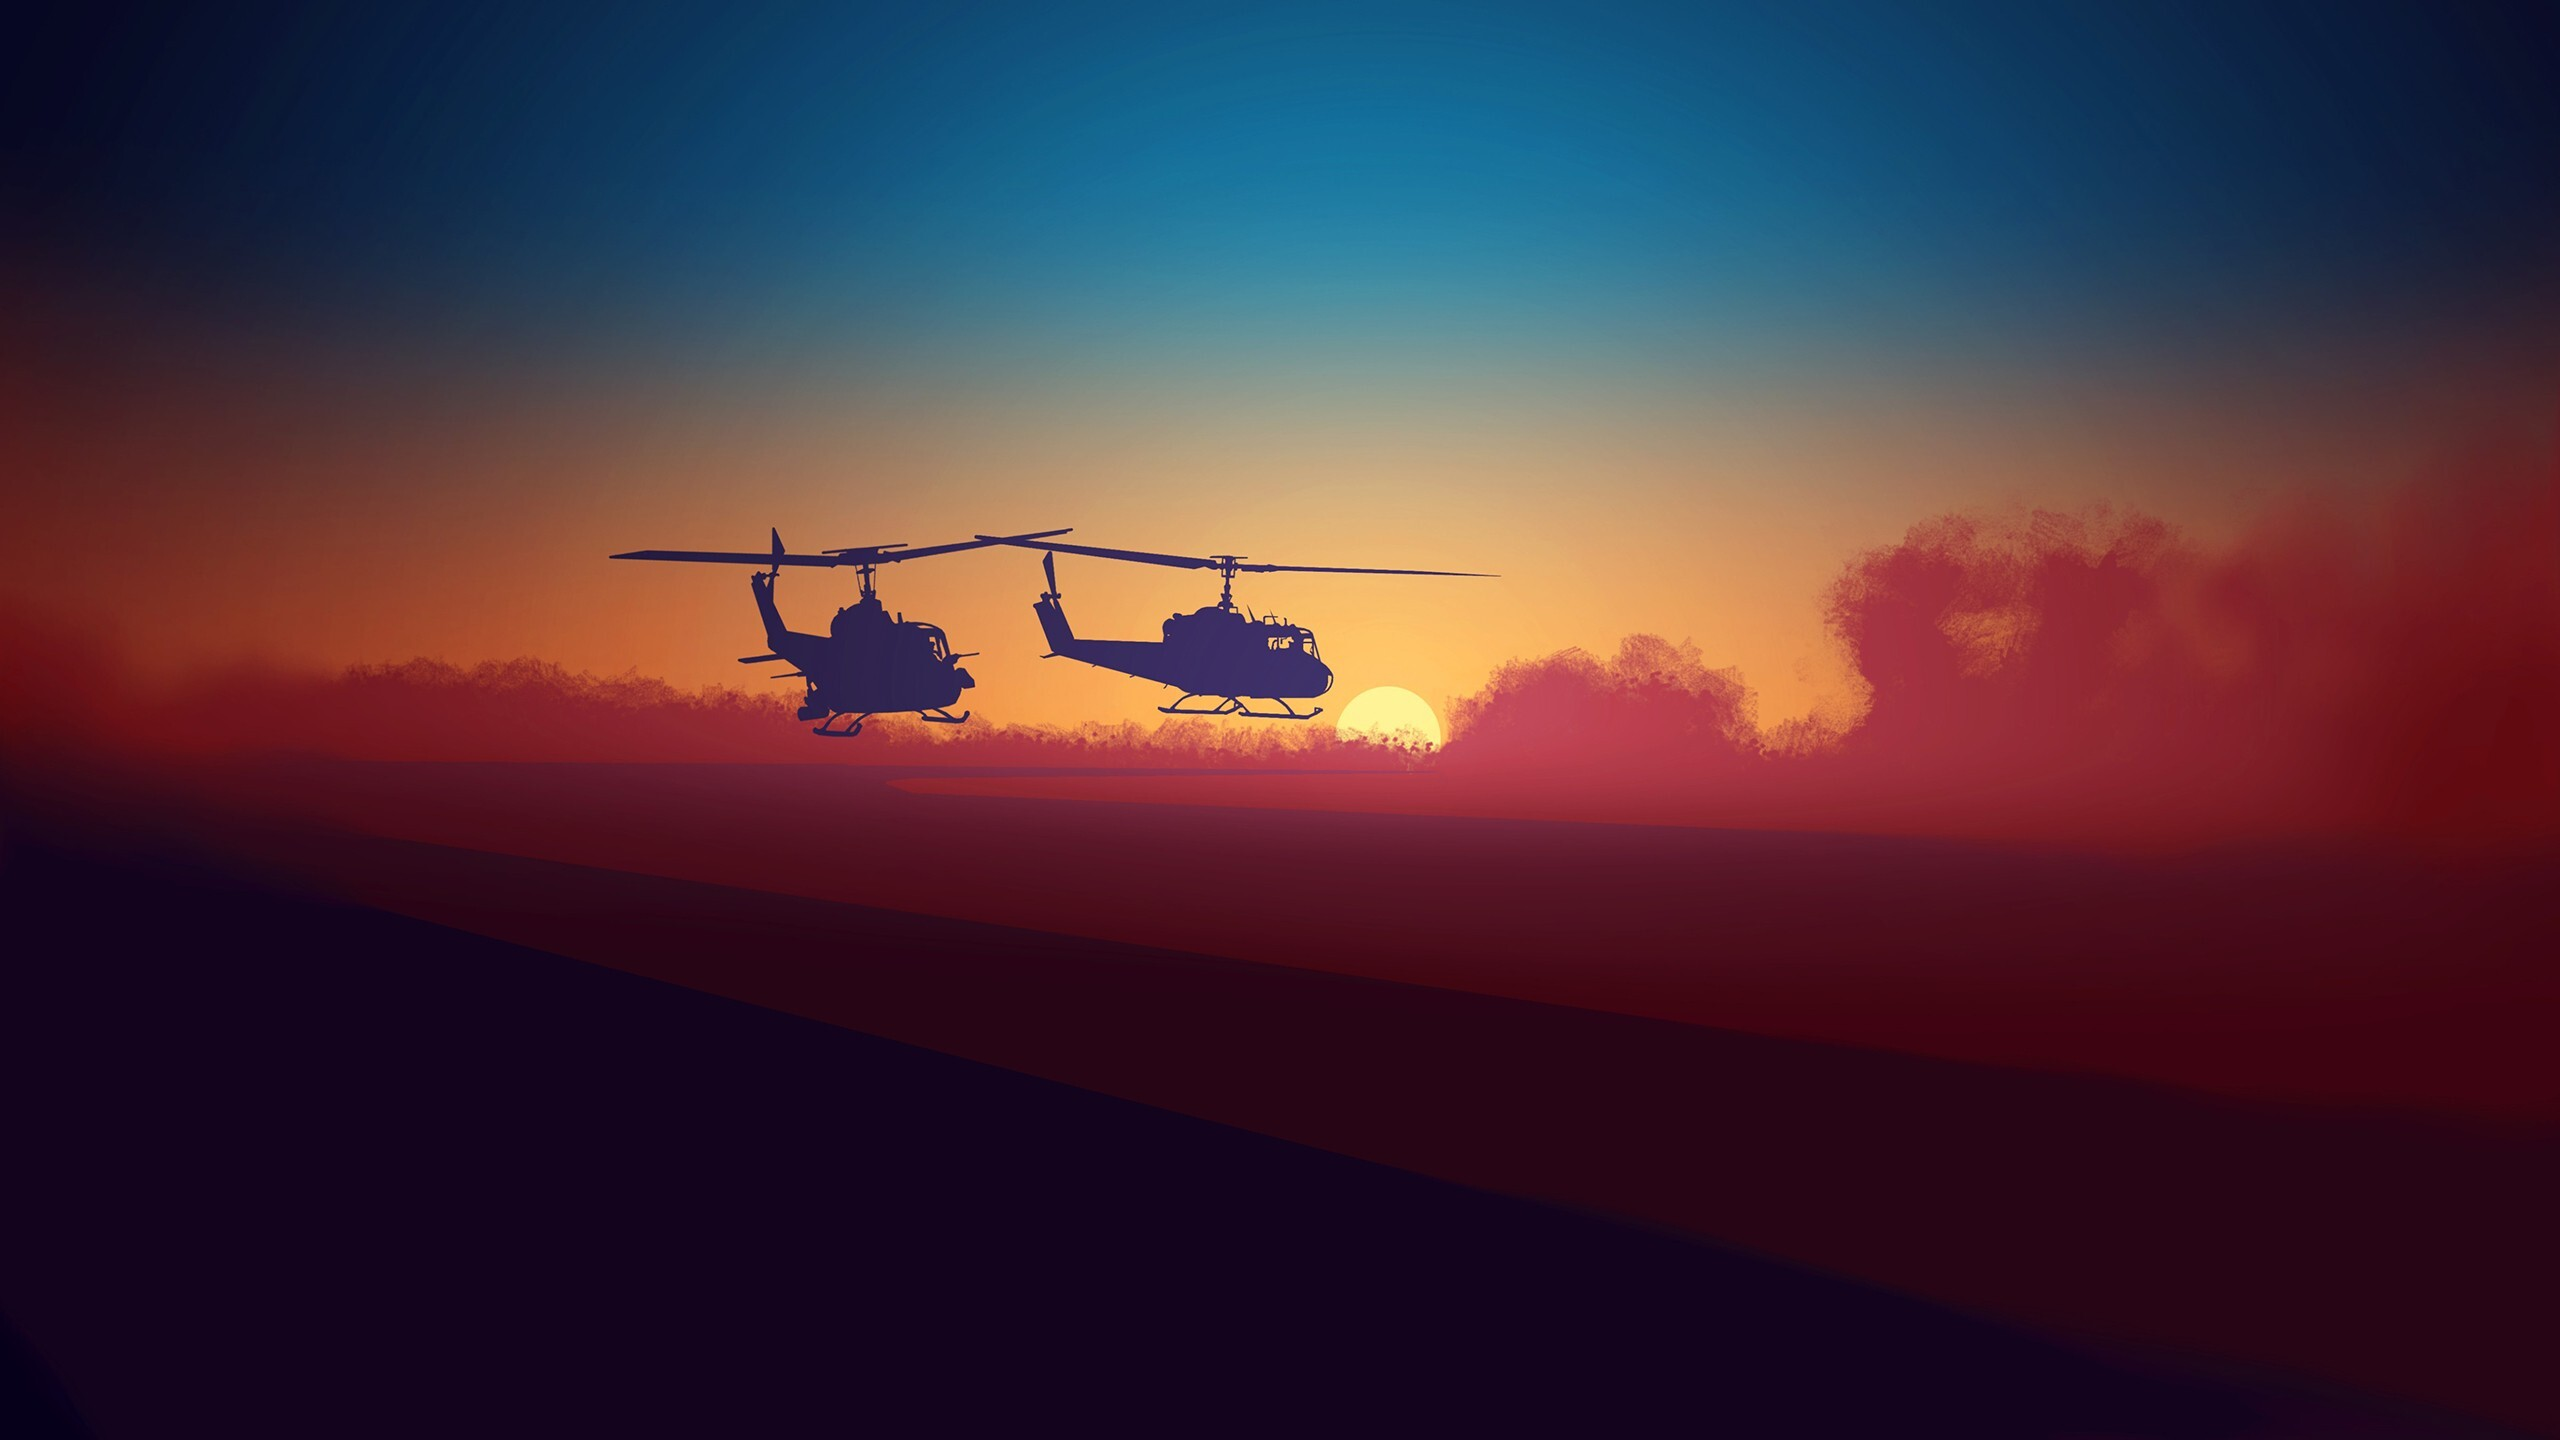 2560x1440 Military Helicopters Minimalsm 1440p Resolution Hd 4k Wallpapers Images Backgrounds Photos And Pictures